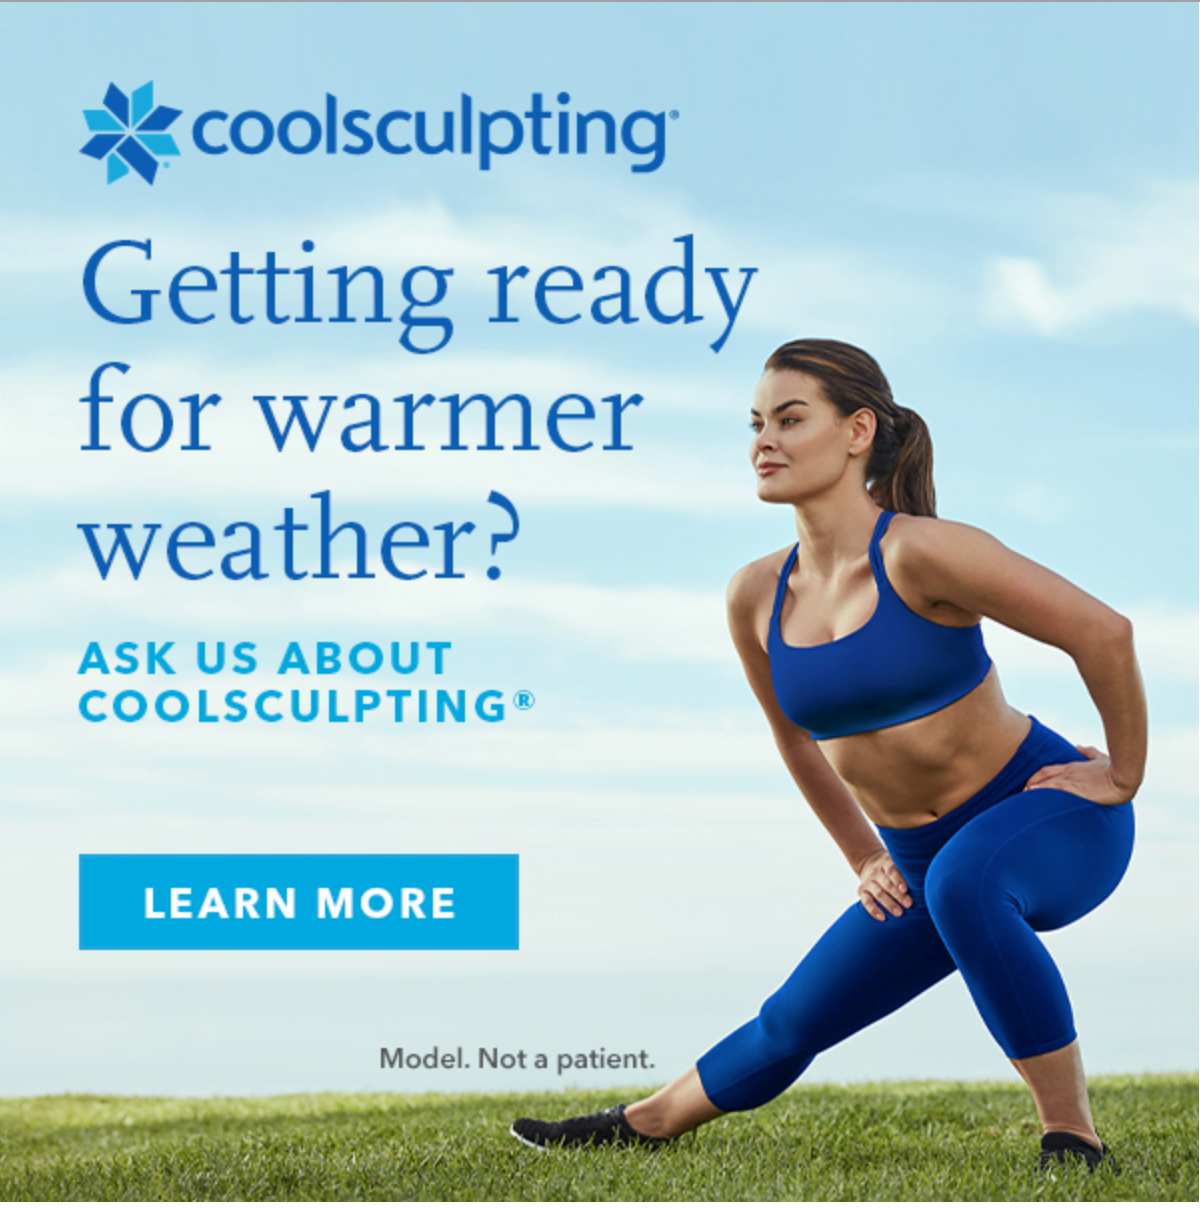 CoolScultping Summer Promo Image